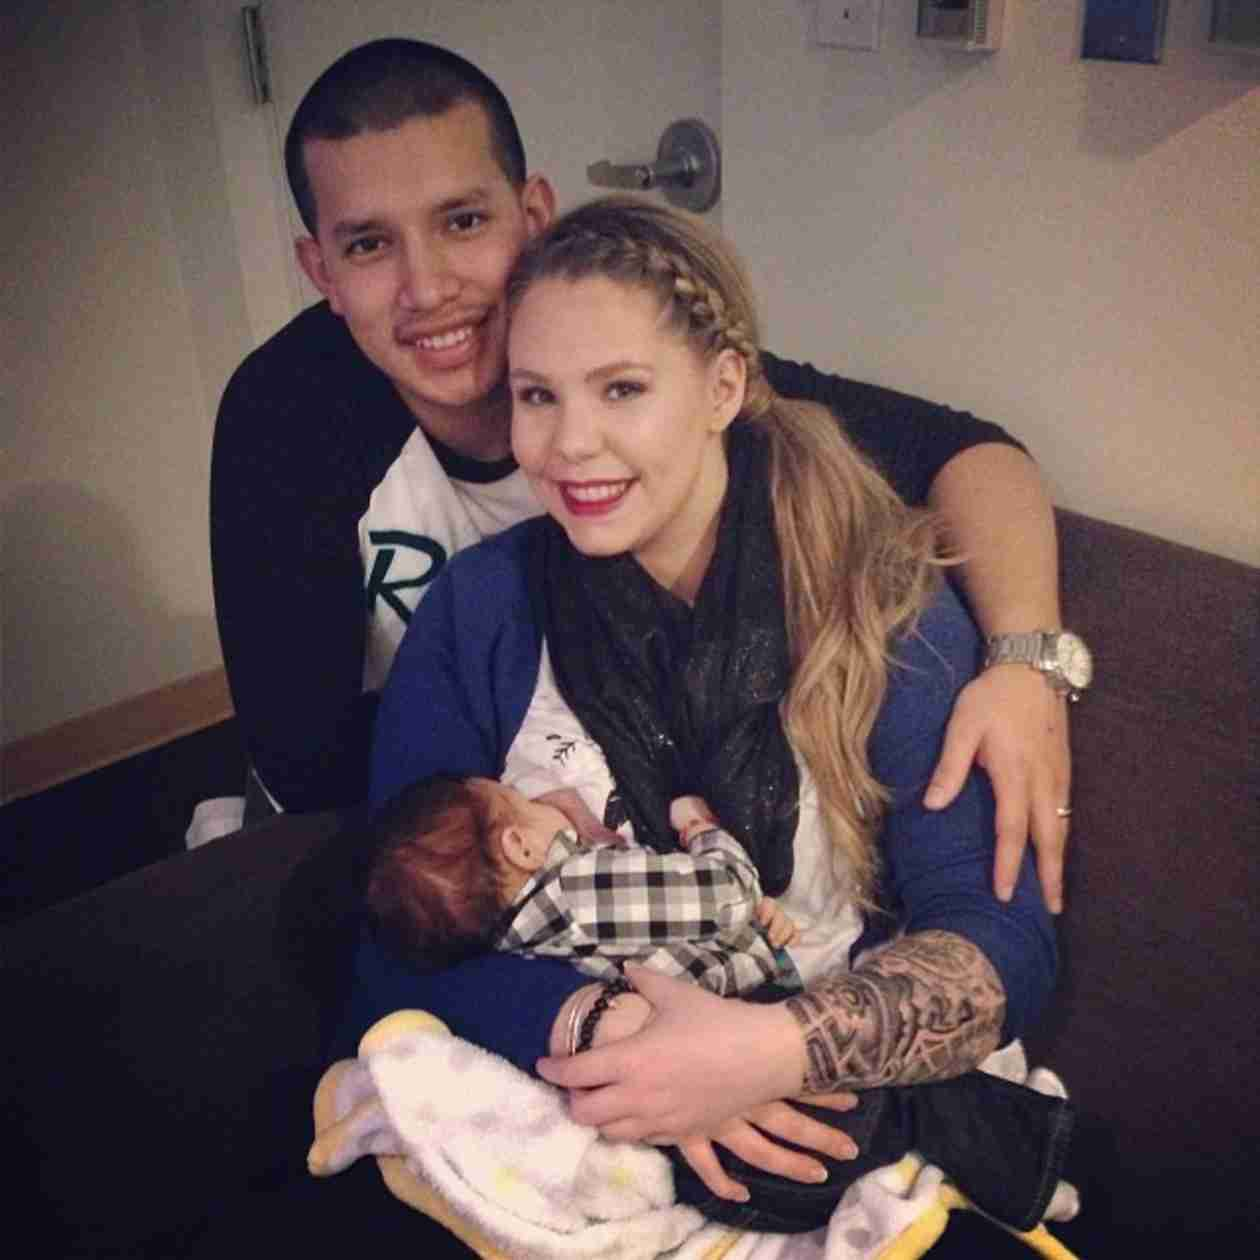 Kailyn Lowry Looks Totally Different With Her New Smile — See Her Transformation (PHOTOS)